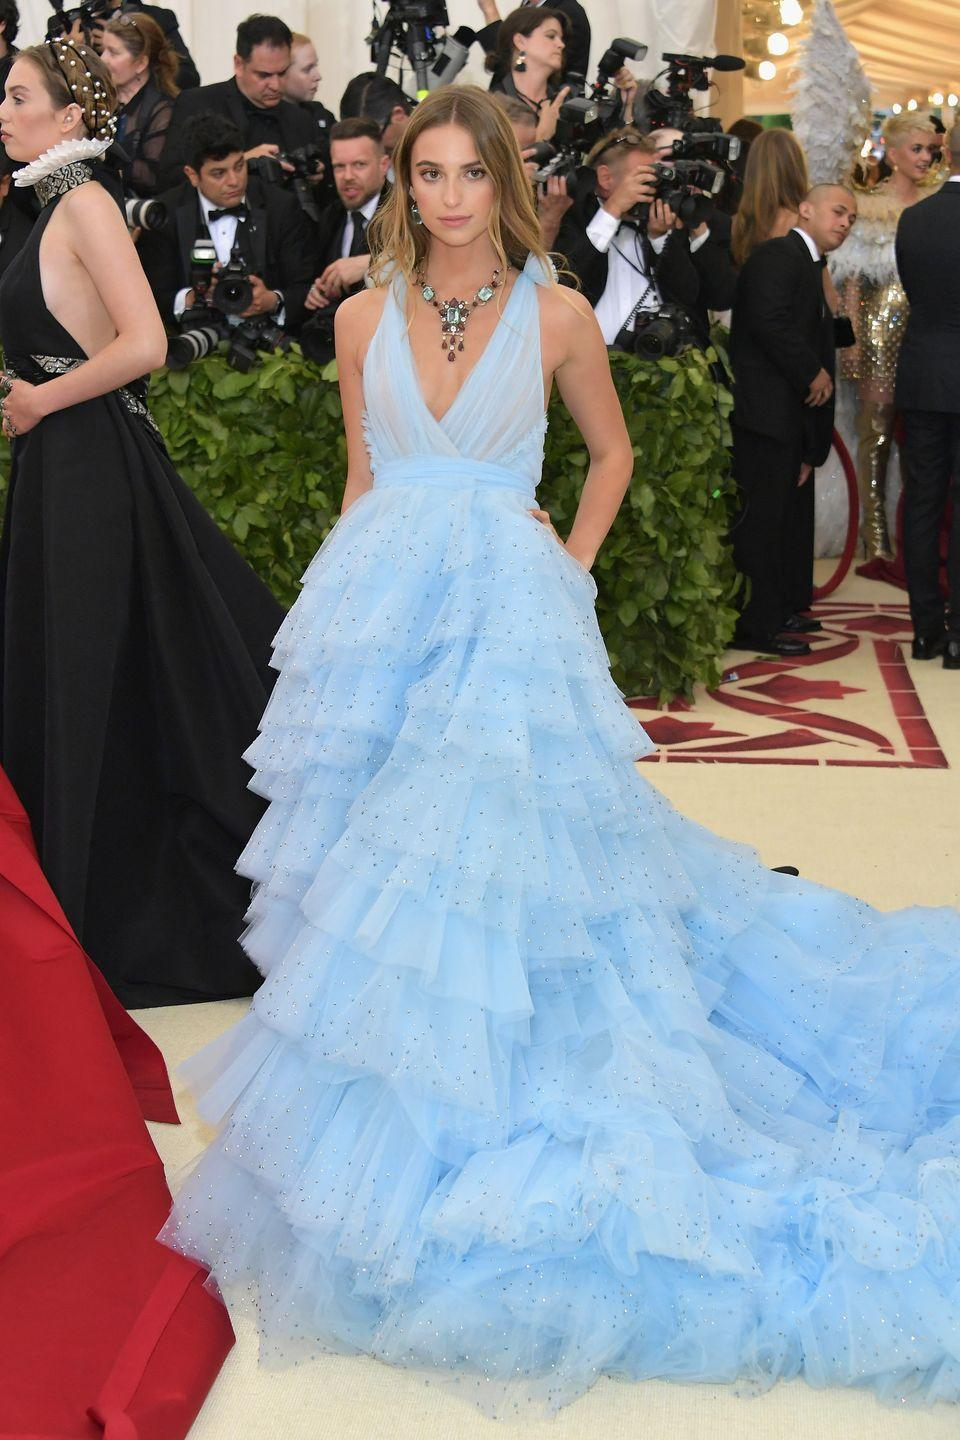 <p>Talita von Furstenberg—granddaughter of Diane von Furstenberg and a real-life princess—wore a gown designed by her grandmother in the perfect shade of Cinderella blue to the 2018 Met Gala in New York.</p>